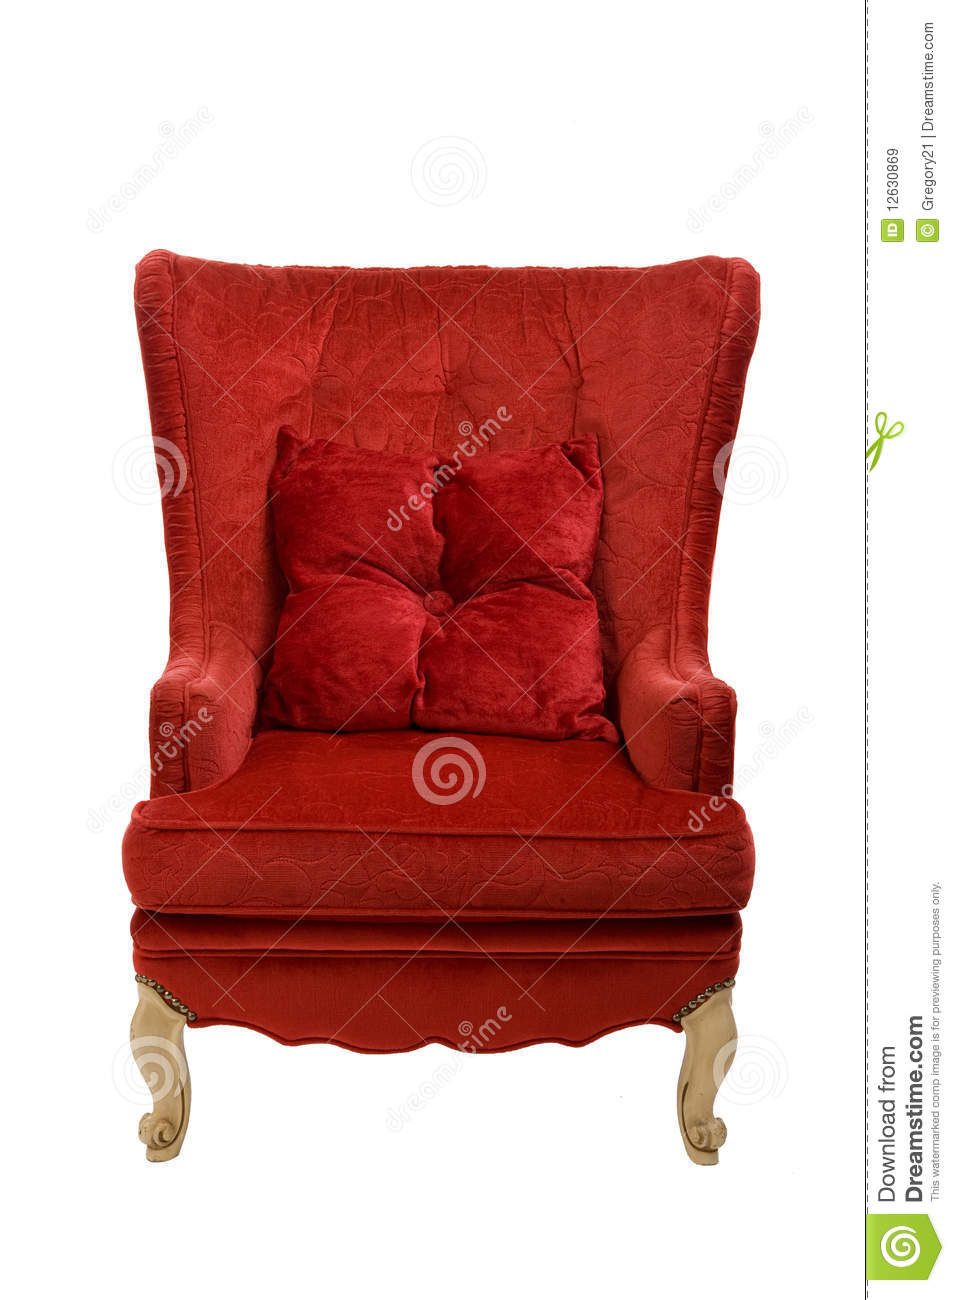 Red velvet chair - Royalty Free Stock Photo Download Vintage Red Velvet Chair